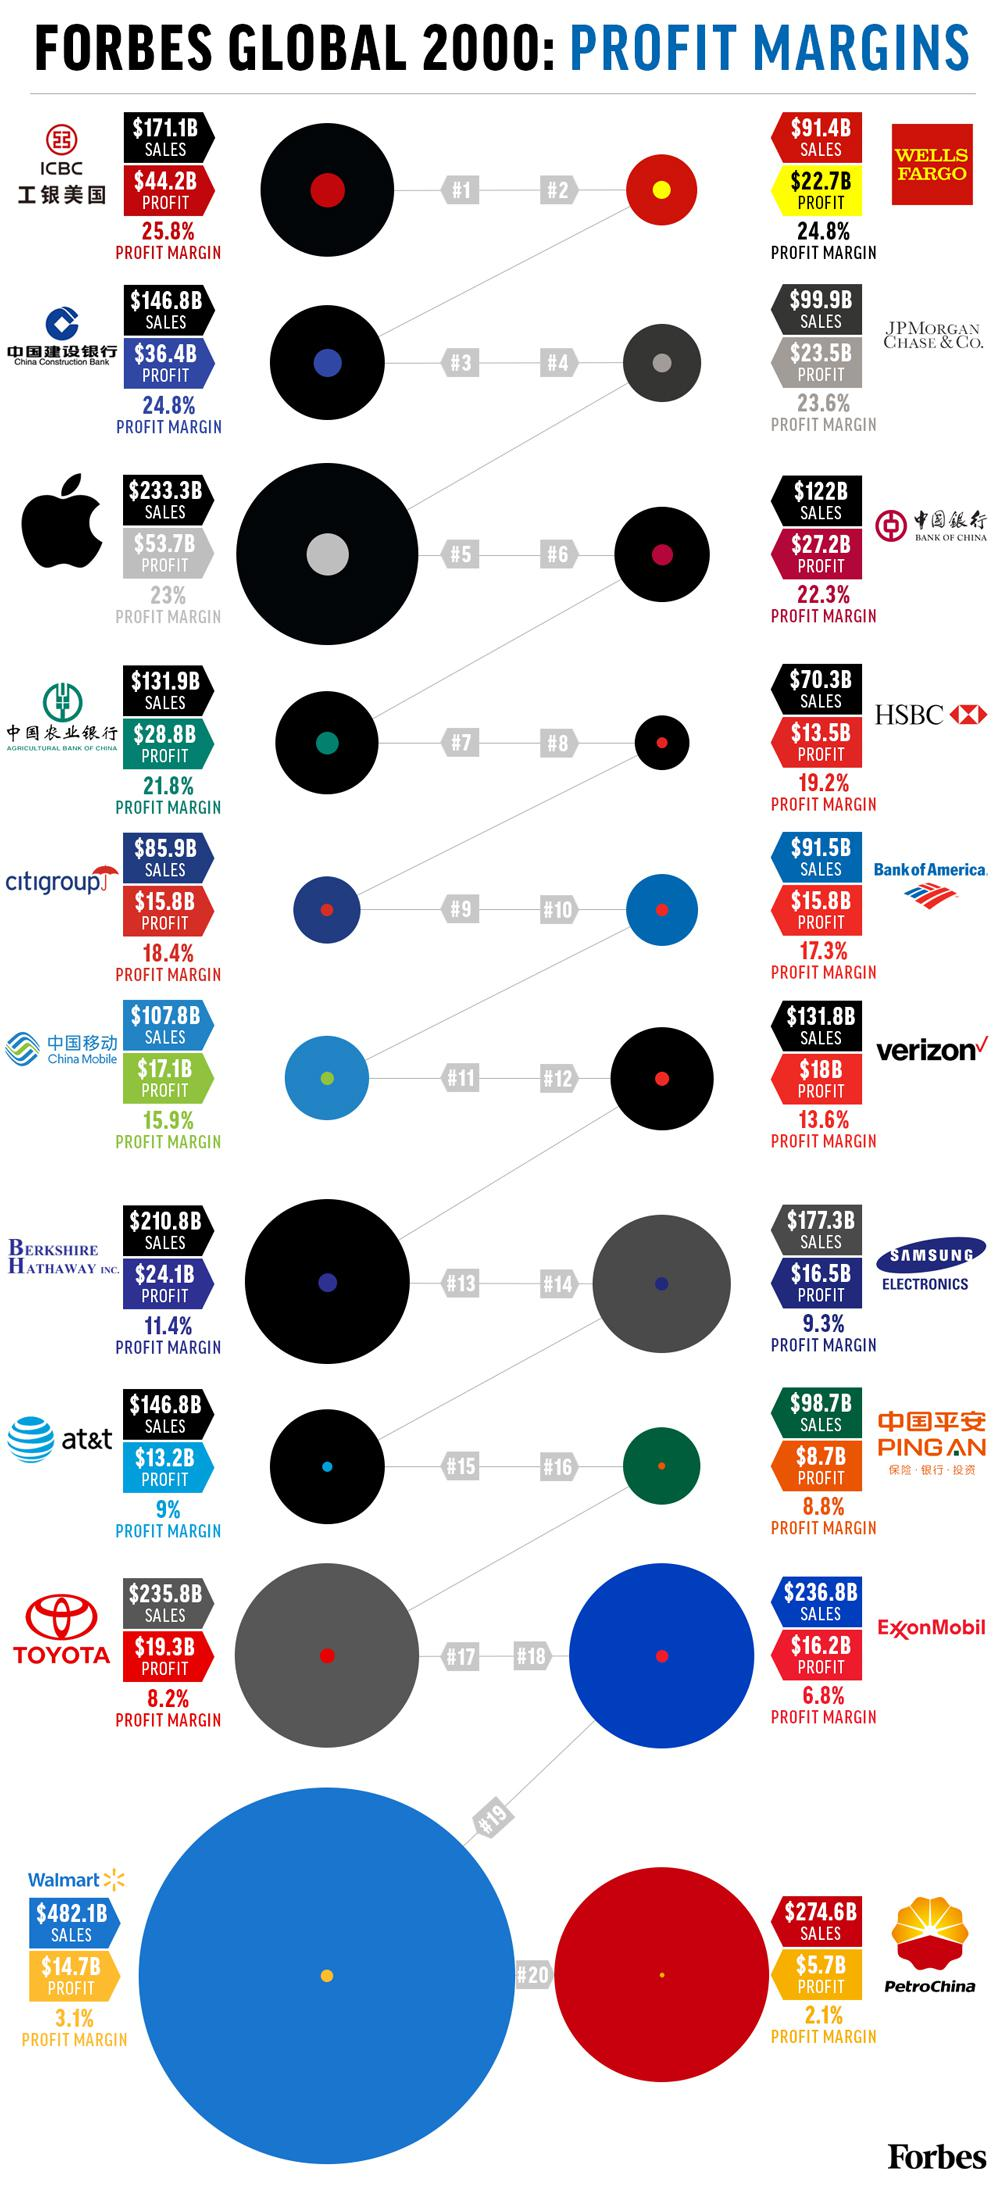 Ranking The Top 20 Global 2000 Companies By Profitability